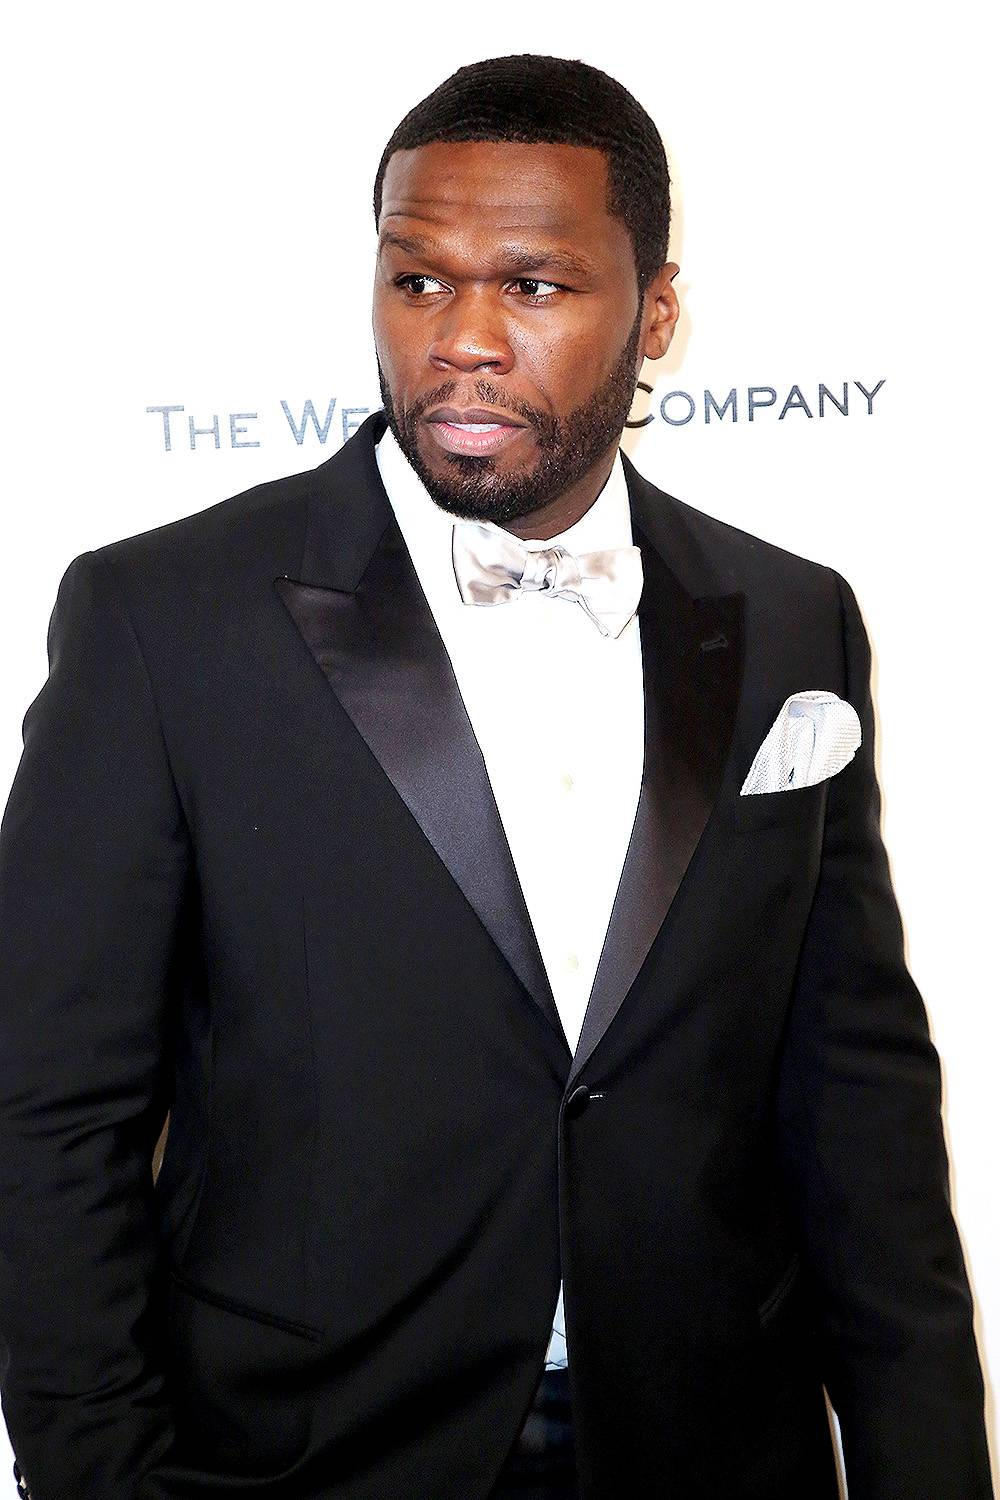 """50 Cent's Ex Blows the Whistle - 50 Cent's ex-girlfriend, who goes by the name of """"Tatted Up Holly,"""" accused the hip-hop mogul of being abusive. It started on social media, of course. According to reports, 50 Cent posted a photo of """"Tatted Up Holly"""" on MediaTakeOut alleging that she slept with Trey Songz. 50 deleted the post but not before Holly saw it. She responded by posting an alleged text exchange between the two, where she threatens to release proof that 50 was abusive toward her. That didn't end well, so she then posted a lengthy message calling him a """"woman beater."""" Yikes. Read the full exchange here.   (Photo: Ari Perilstein/Getty Images for FIJI Water)"""